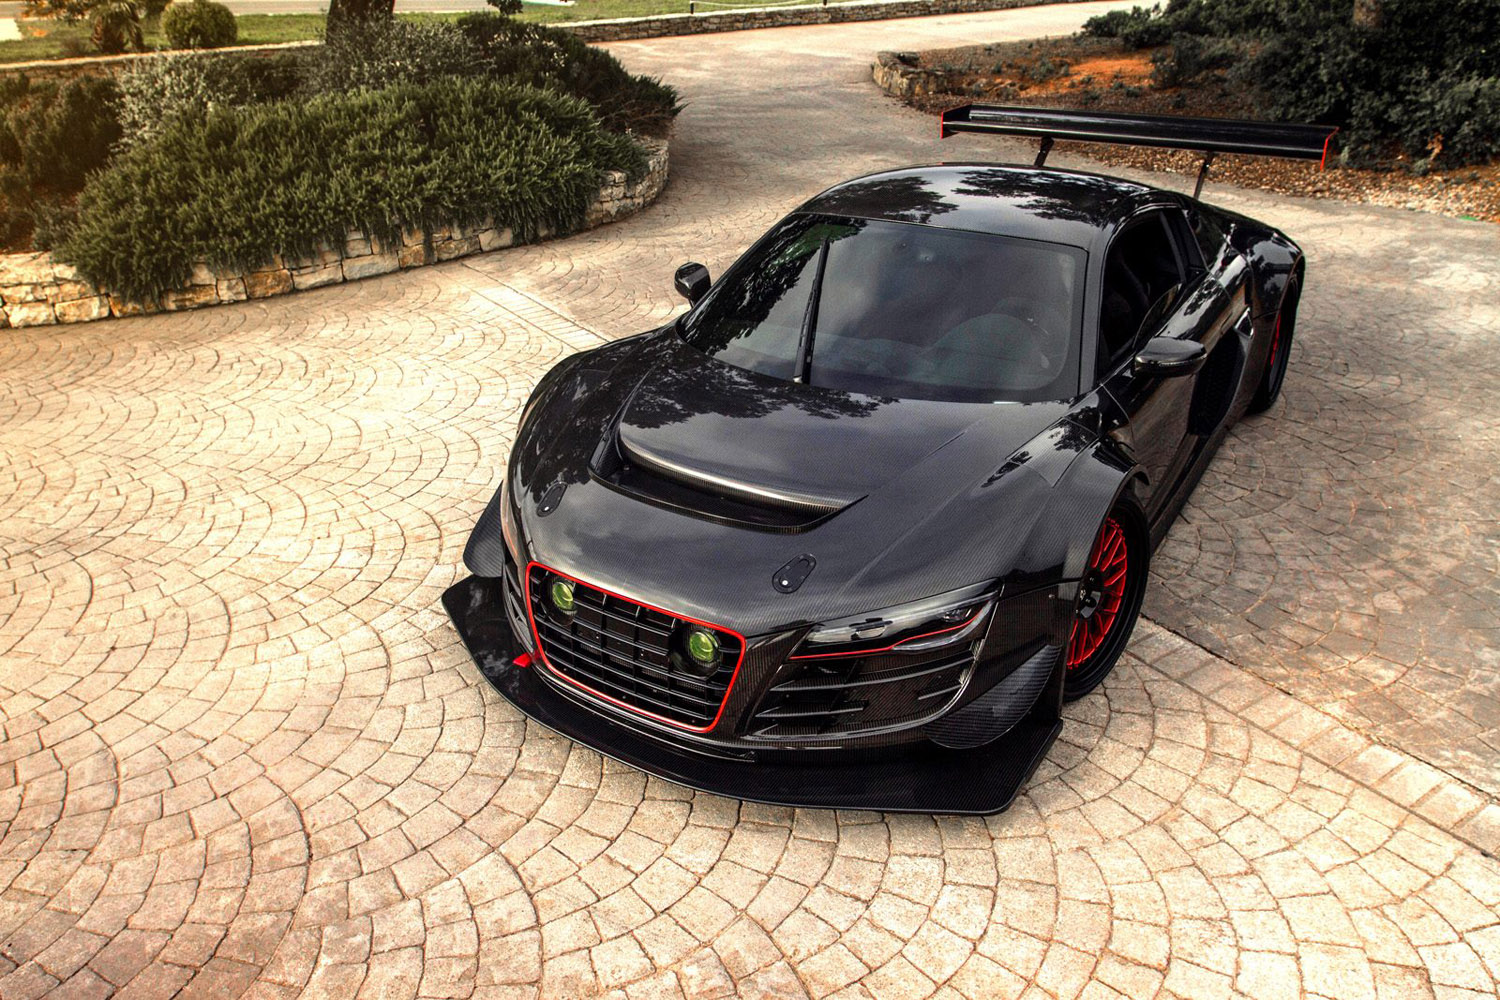 The World's Most Evil Audi R8 Looks Like a Race Car, but Isn't!